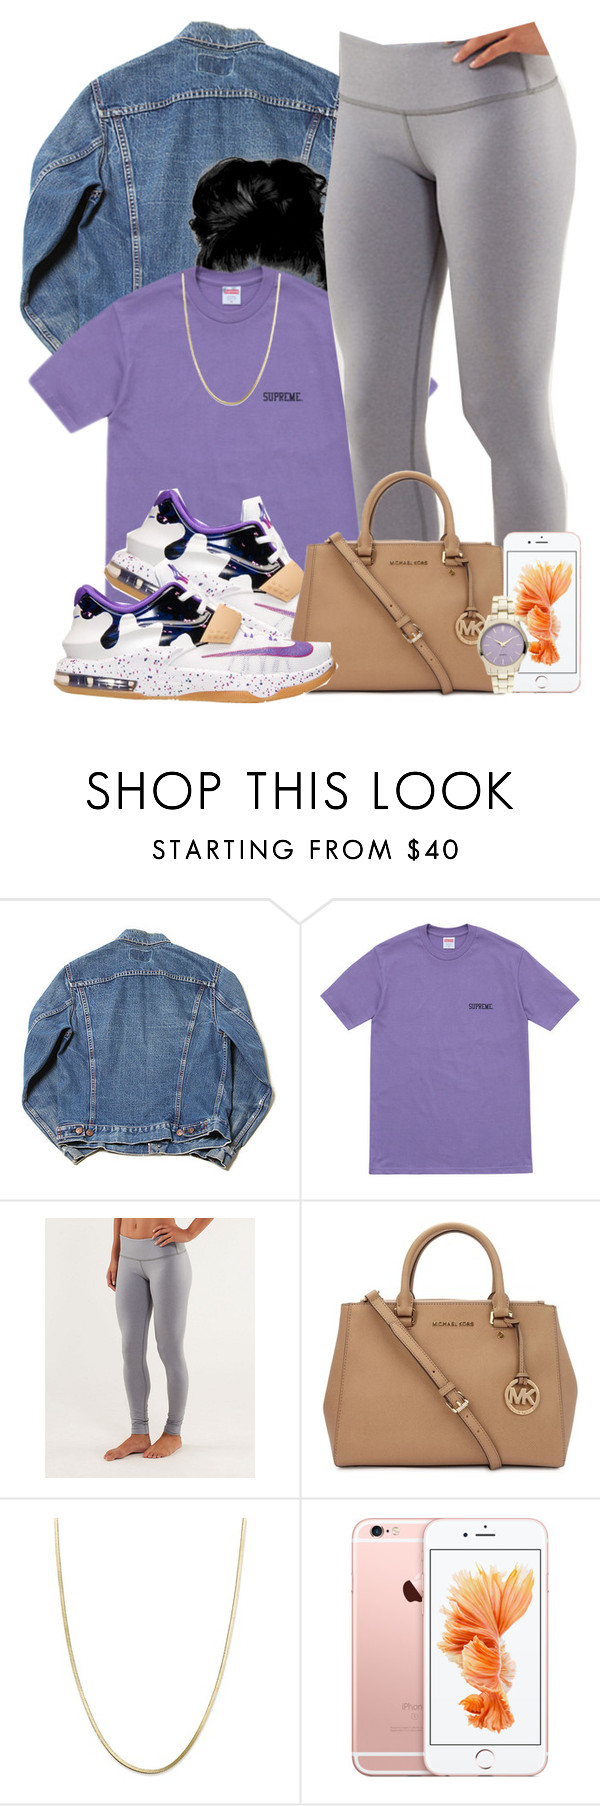 """""""Untitled #525"""" by b-elkstone ❤ liked on Polyvore featuring NIKE, Michael Kors and Giani Bernini"""